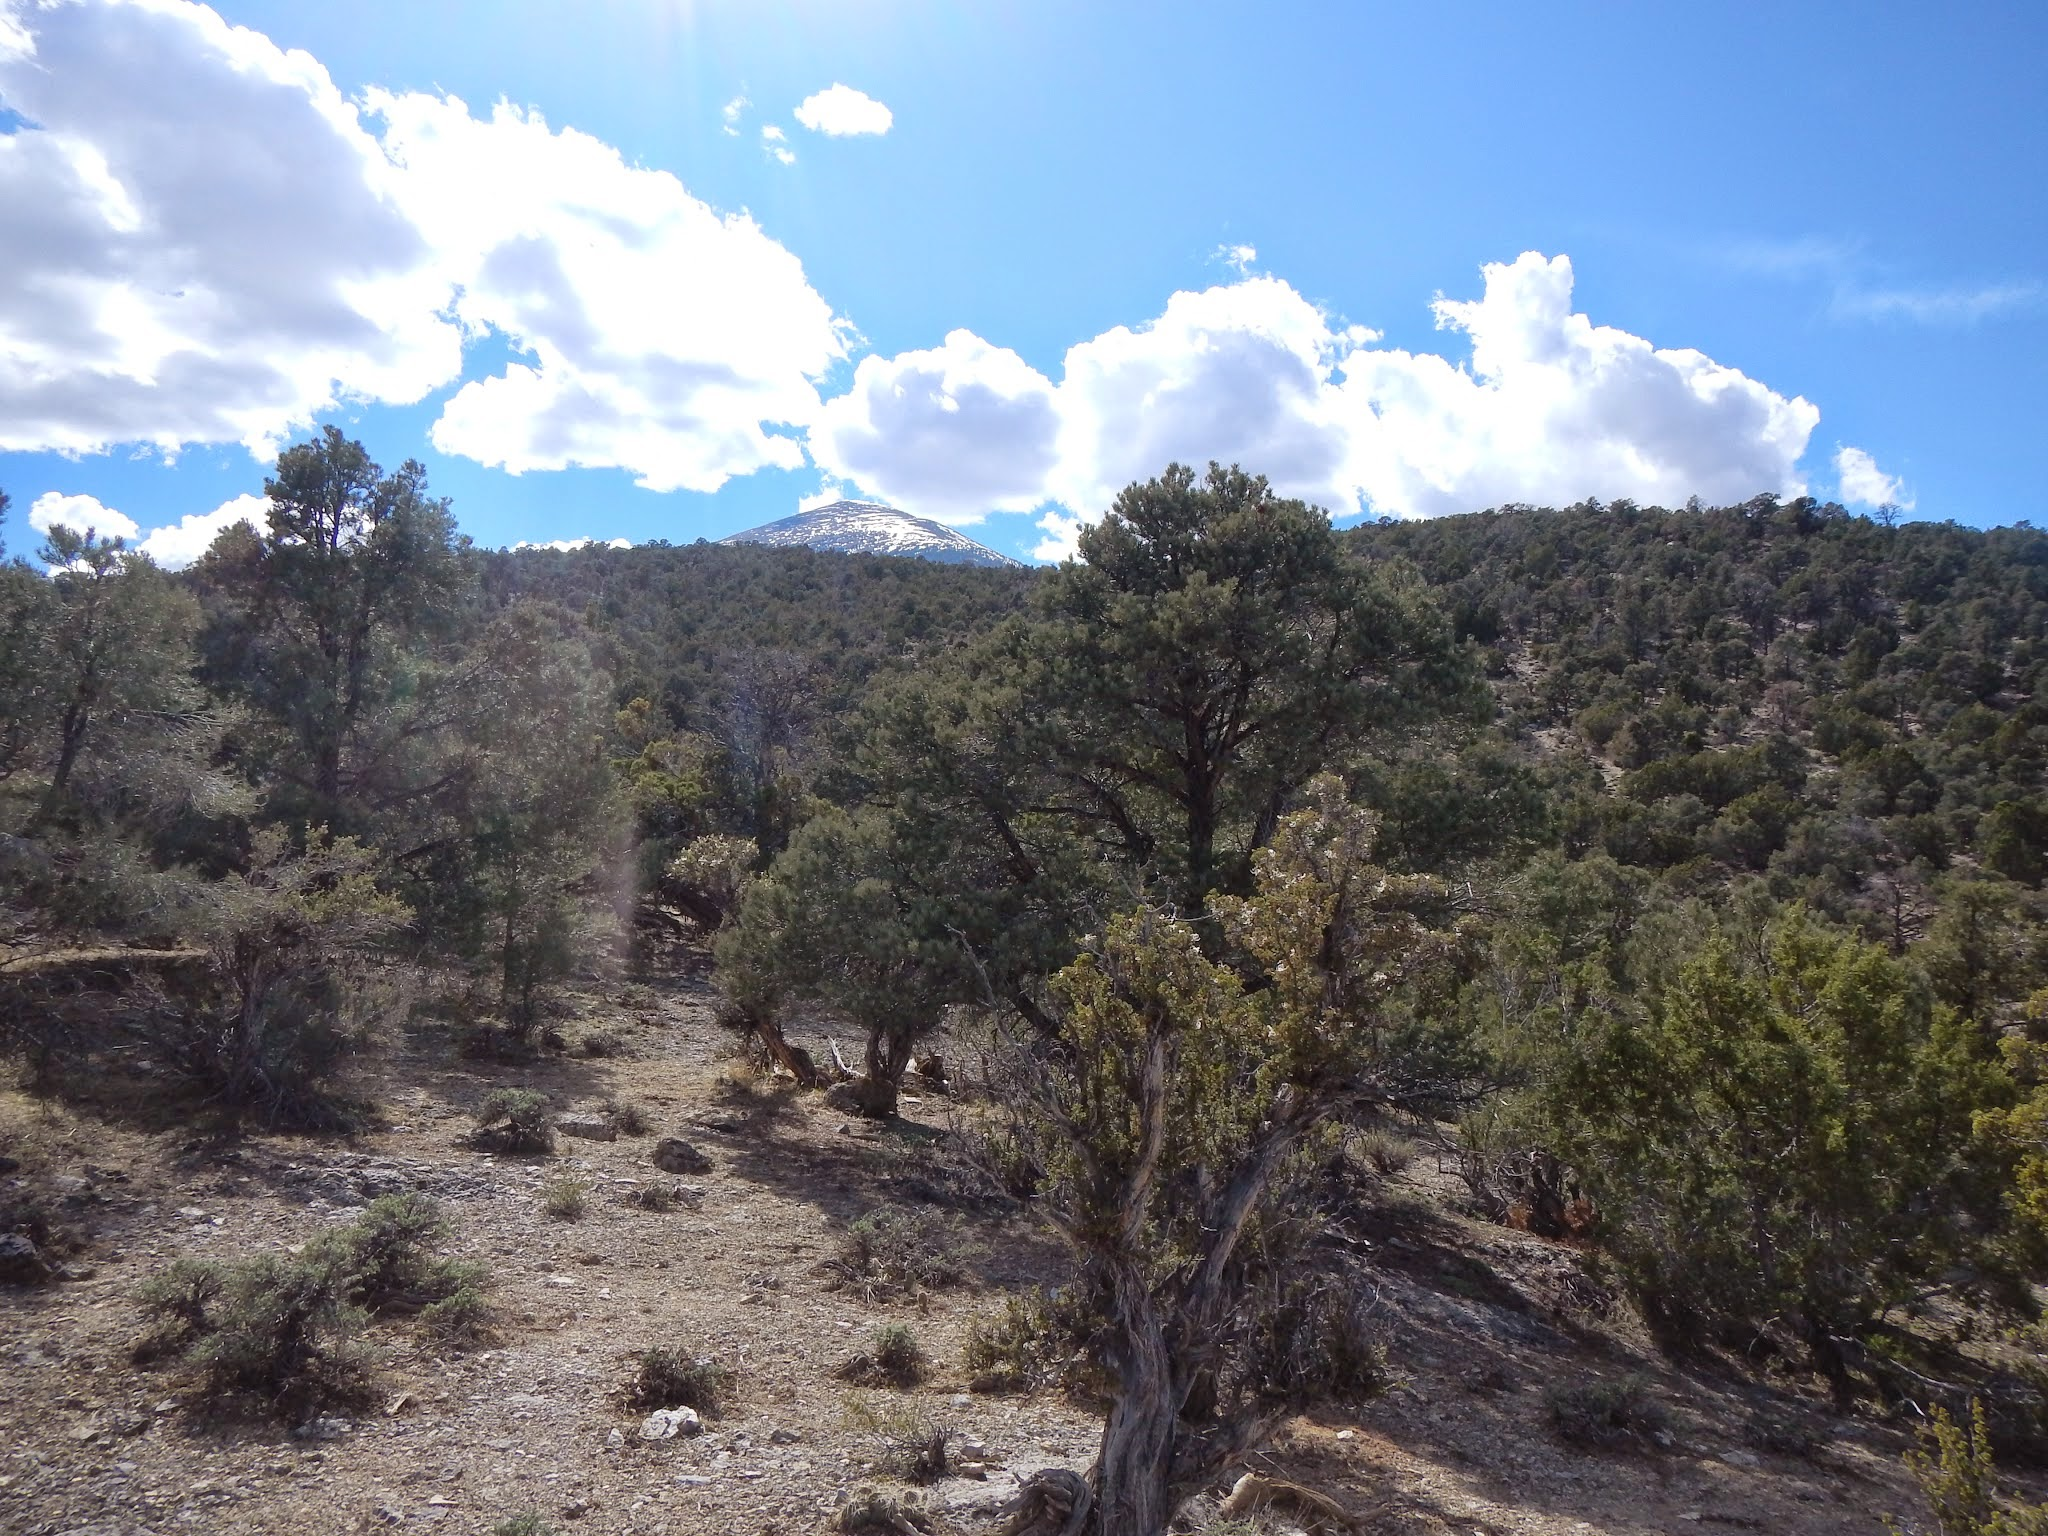 Photo: Our first hike in the park took us through a dry, juniper and sage lined nature trail.